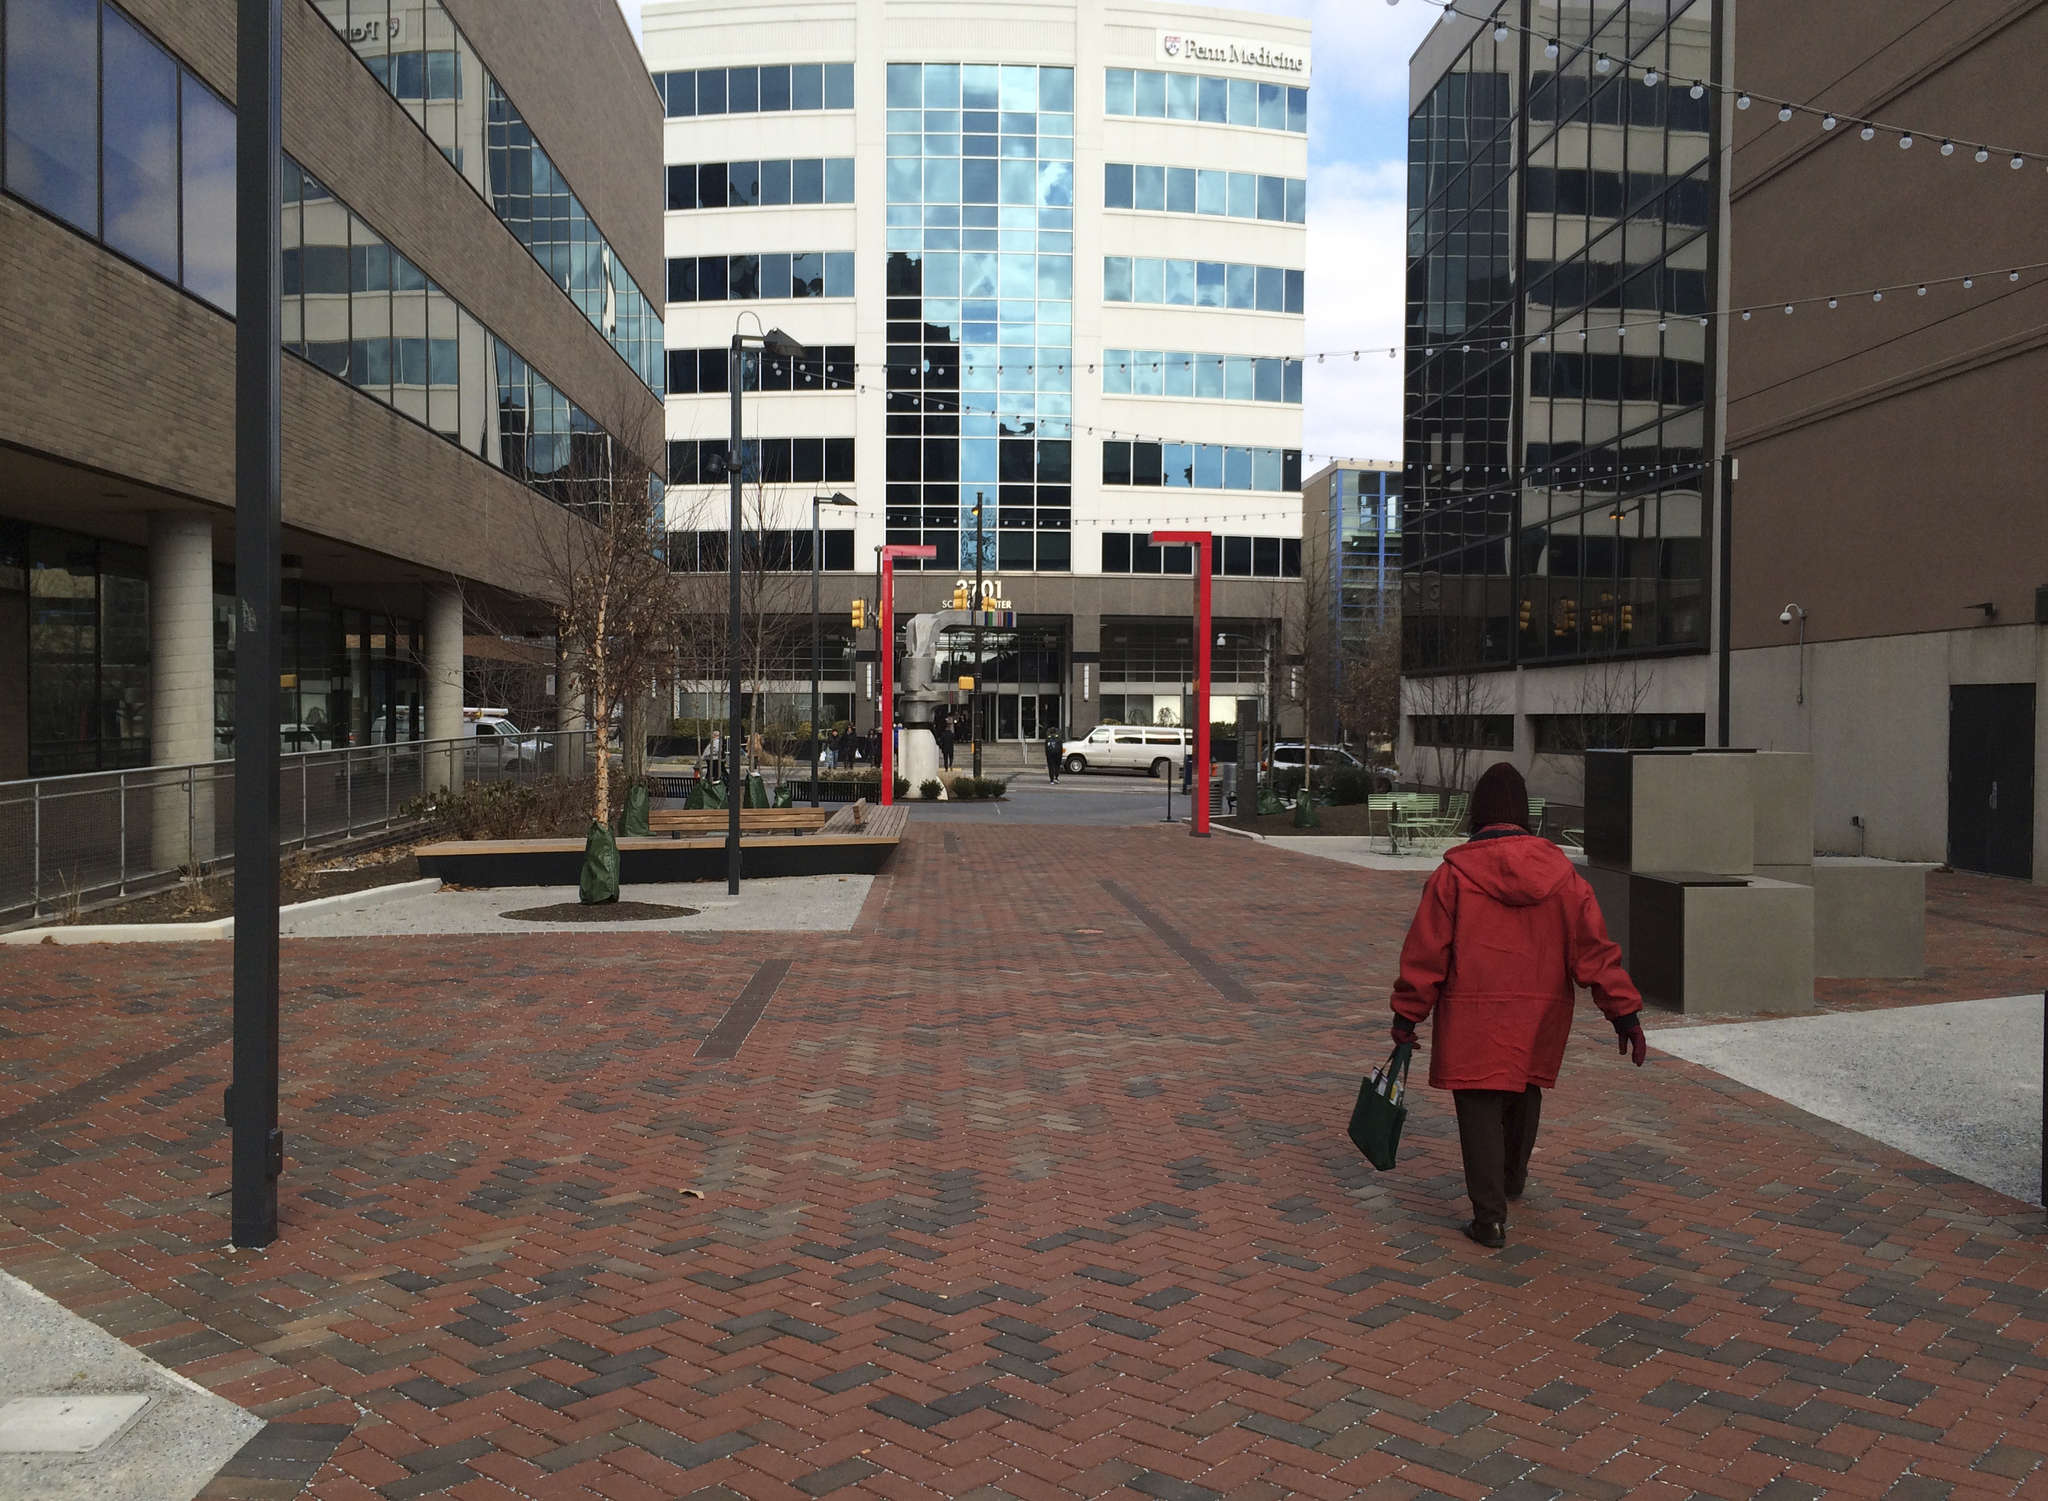 In March, lead developers Wexford and University City Science Center will etch new streets into the huge site. An effort to landscape the 37th Street walkway to the new uCitySquare is just brick pavers and chairs.